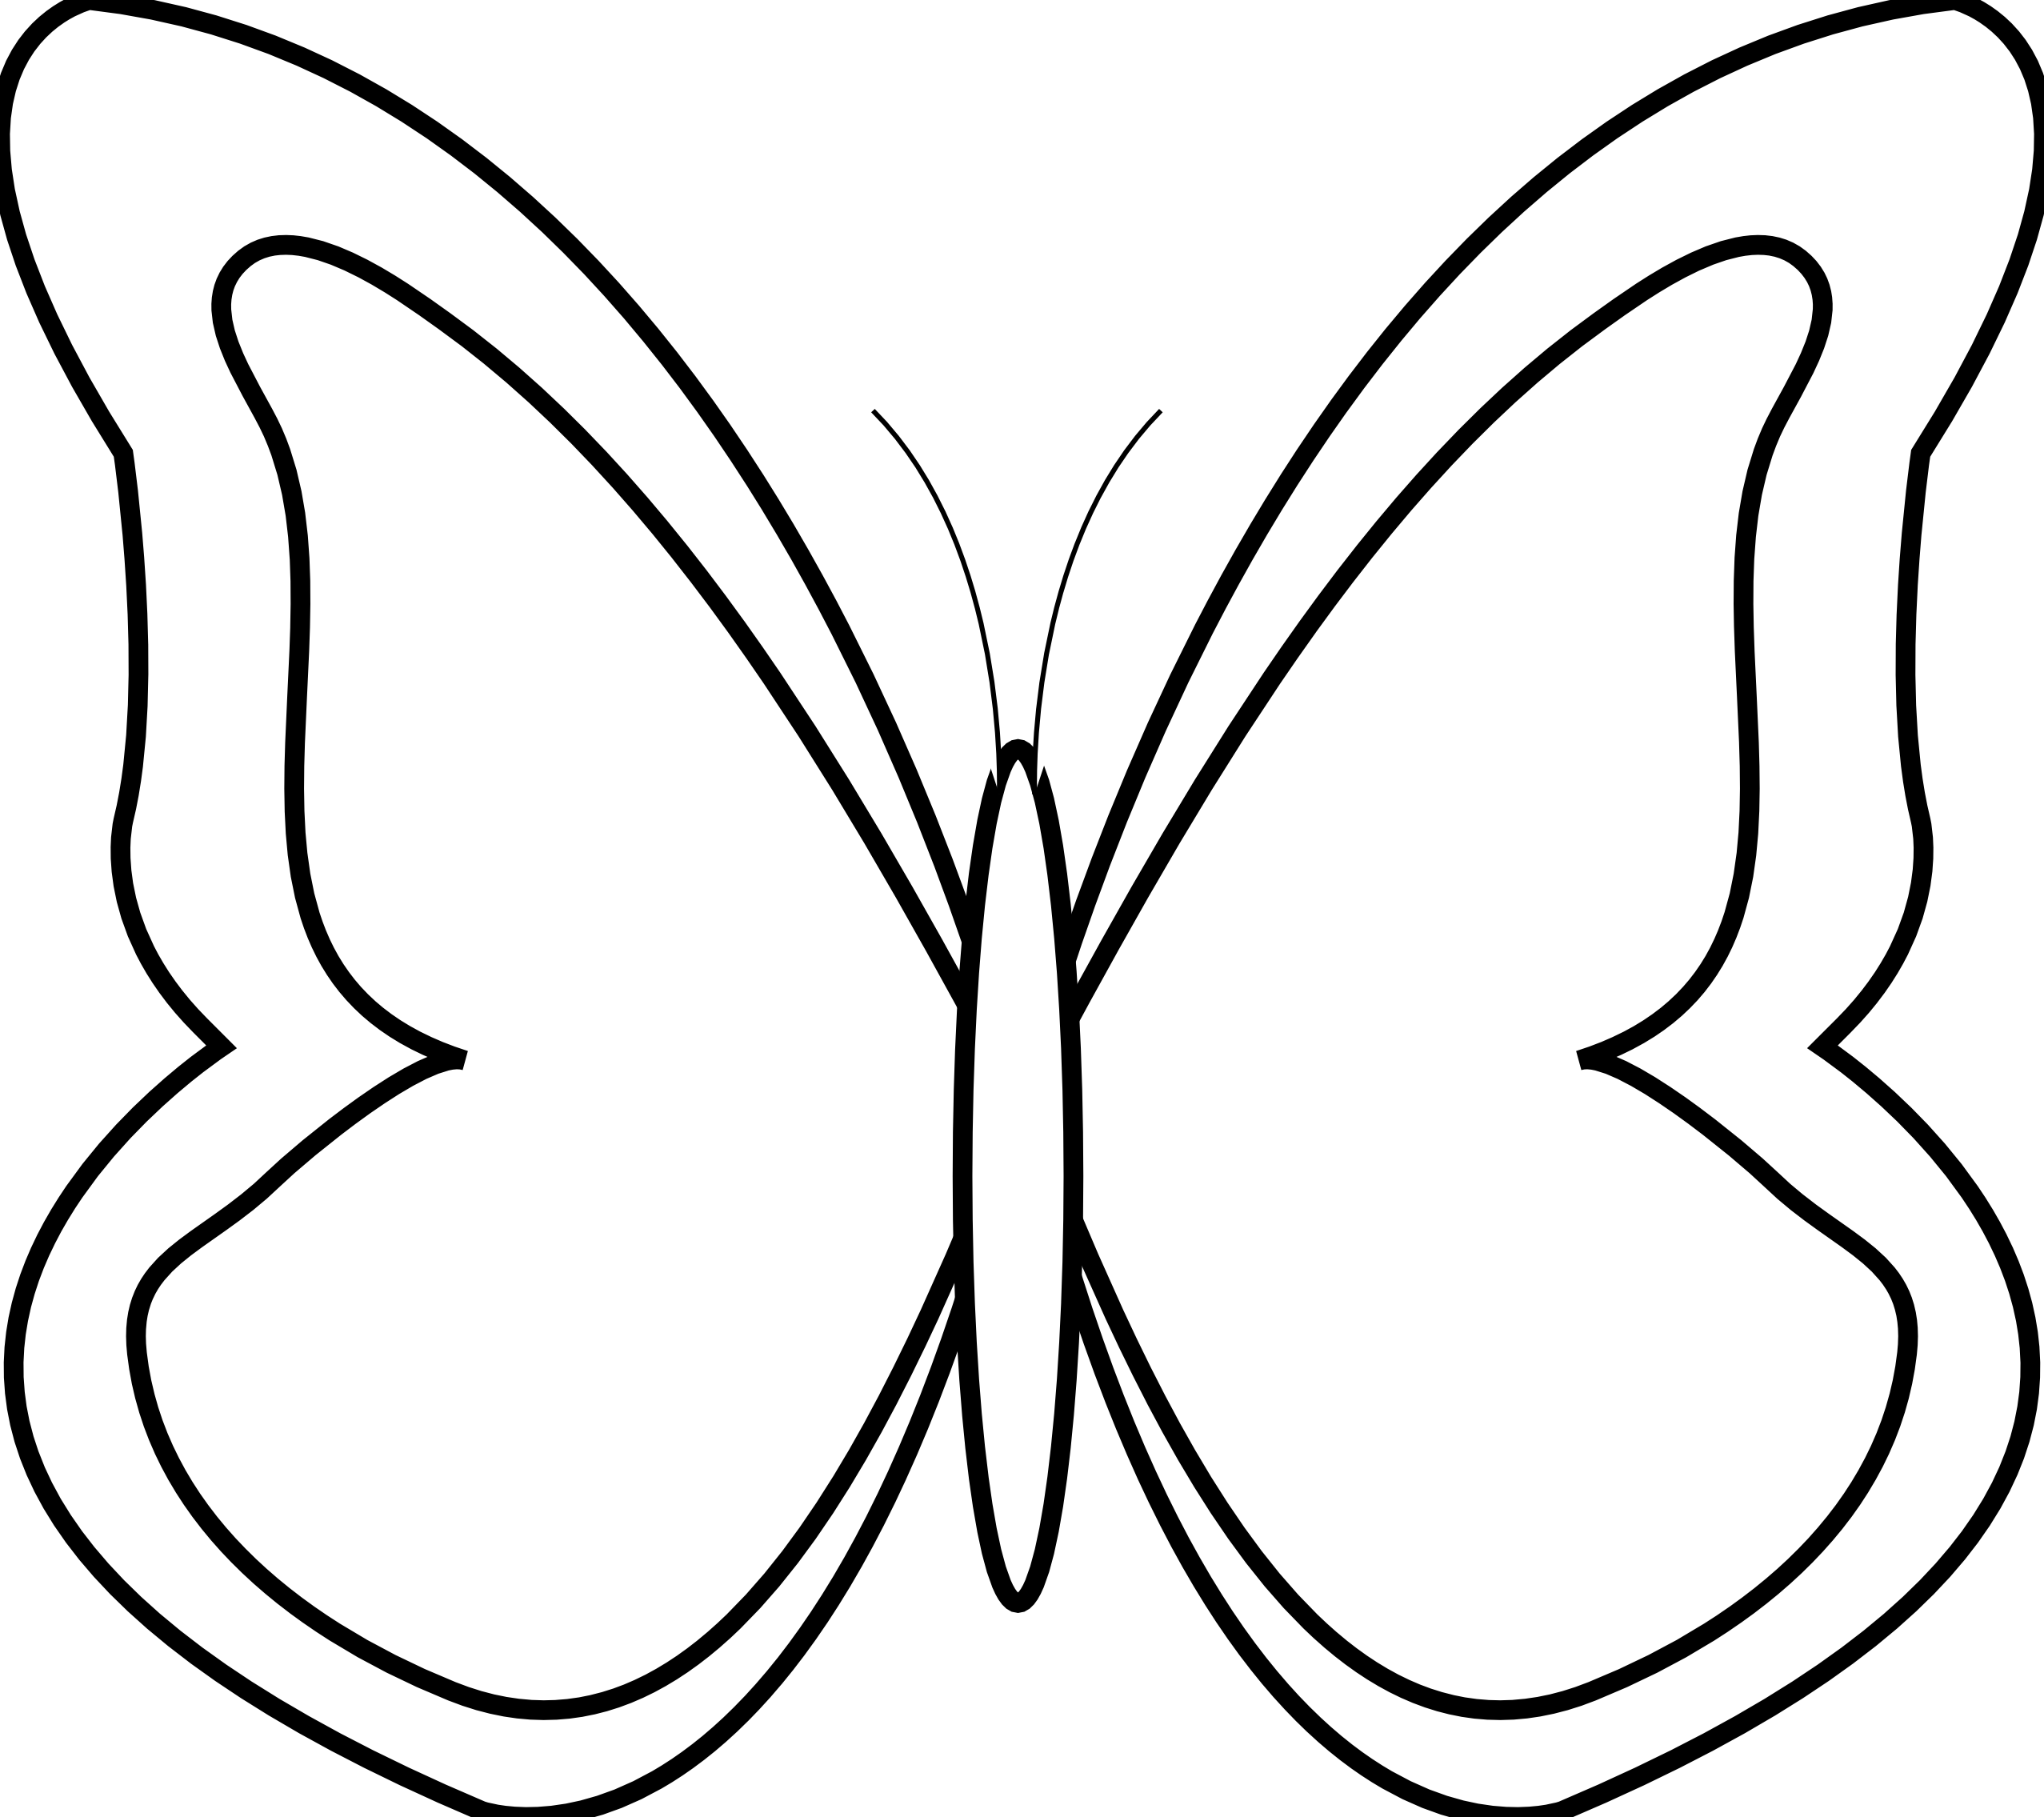 Line Art Vector Design Png : Butterfly black white line art scalable vector graphics